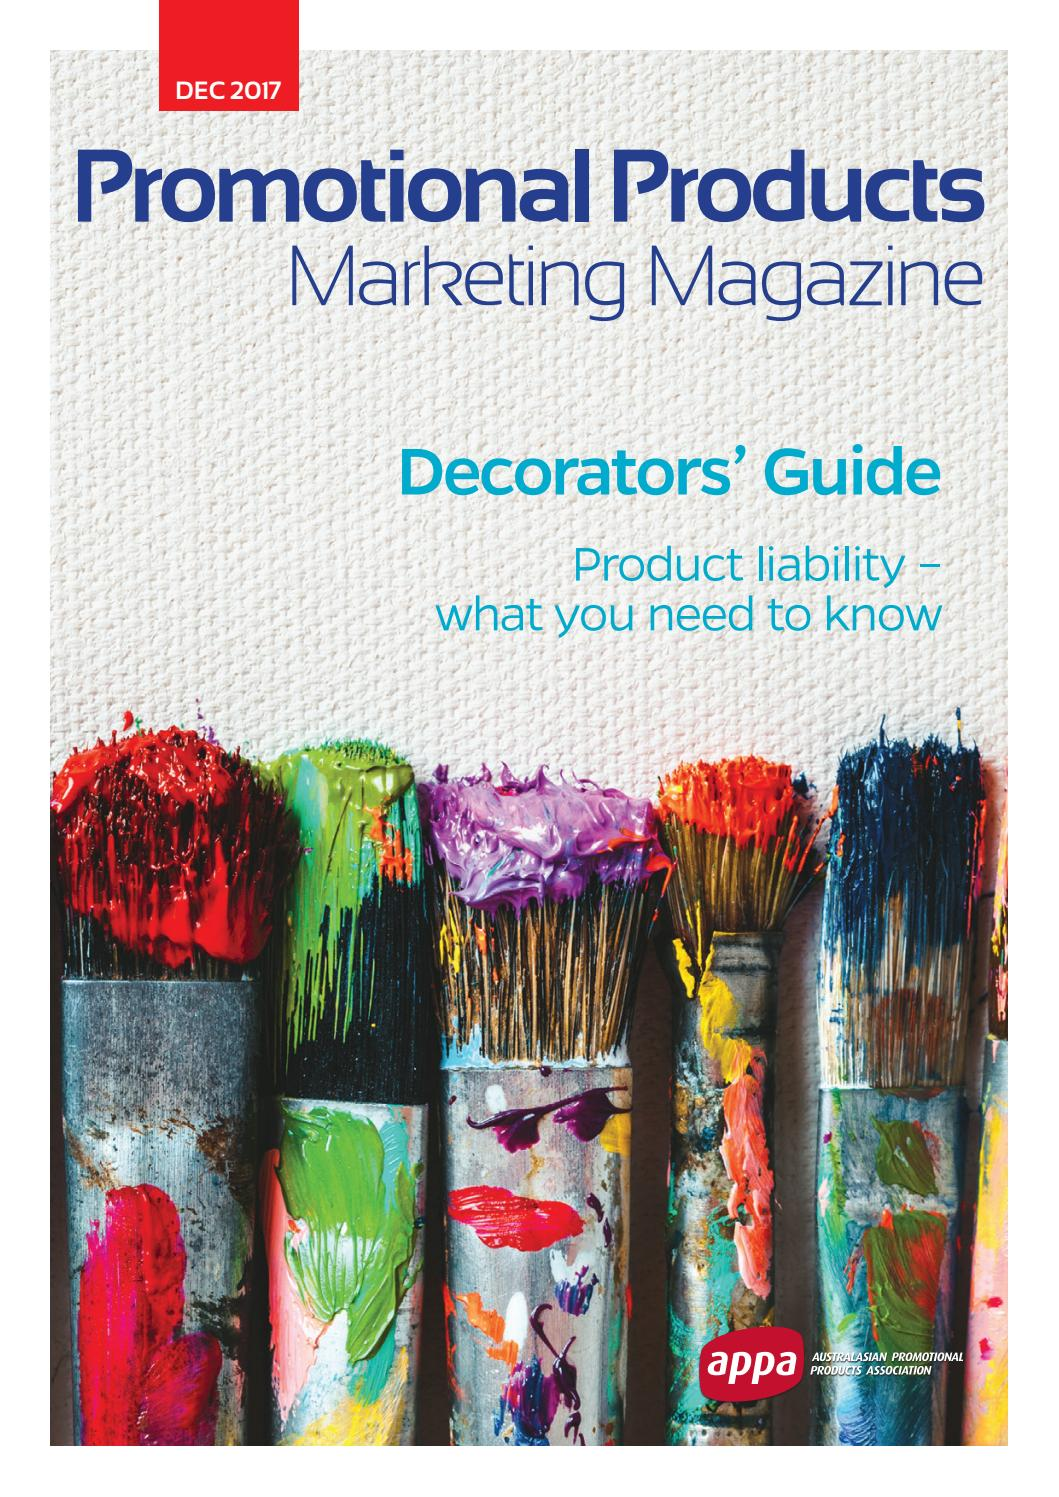 f951d391c APPA Promotional Products Marketing Magazine Dec 2017 by Promotional ...